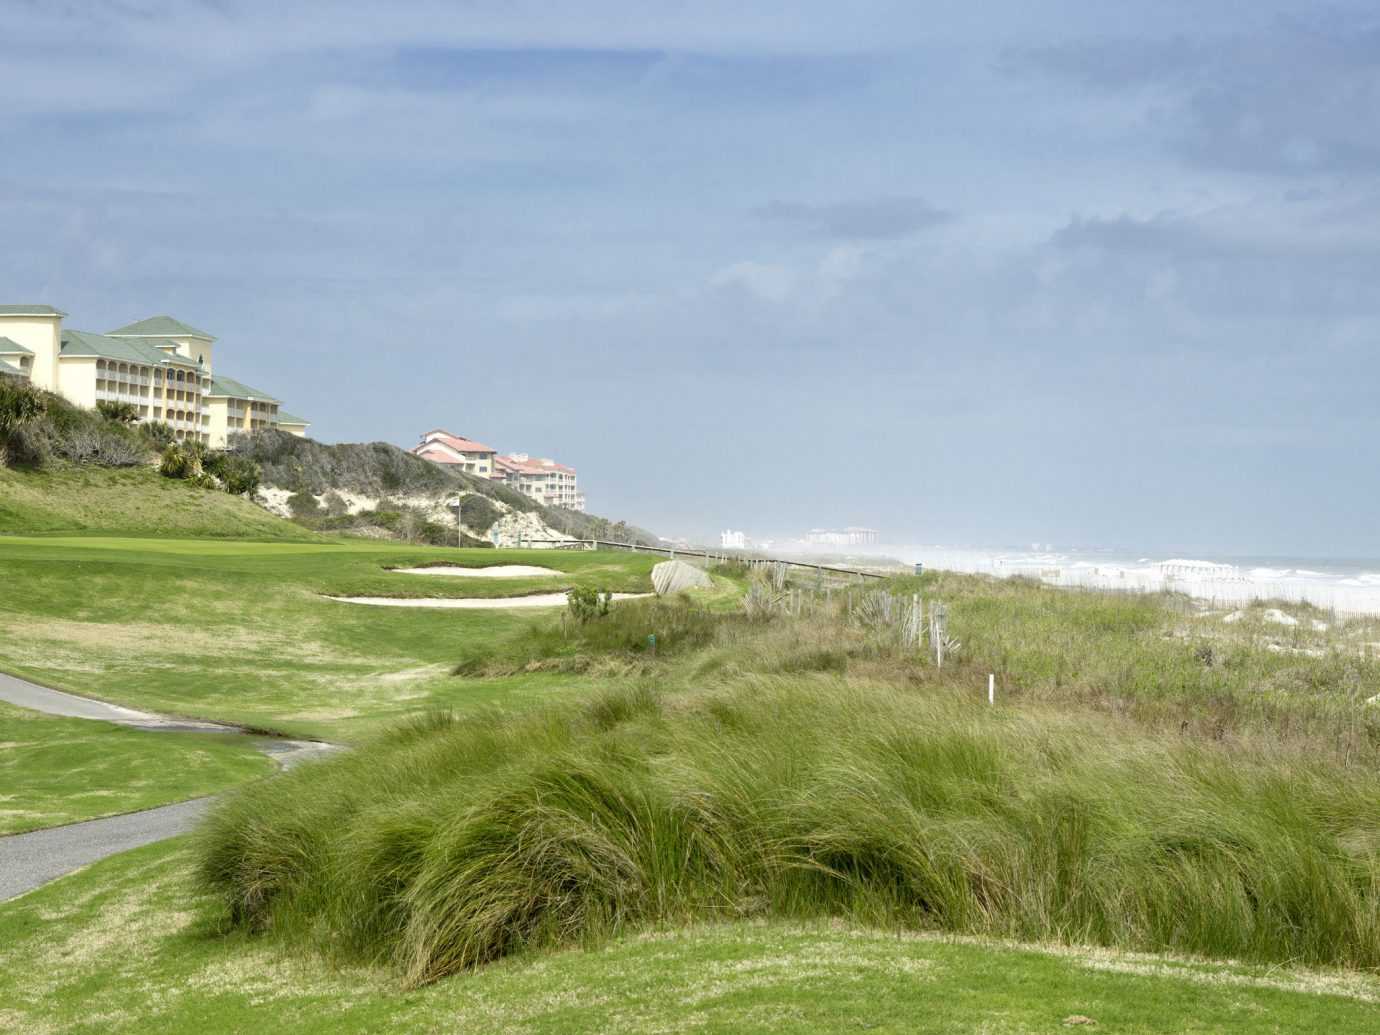 Road Trips Trip Ideas grass outdoor sky Coast promontory shore Sea terrain headland land lot Nature Beach Ocean bay grassy cloud cape grassland golf course cliff landscape grass family golf club plain hillside highland